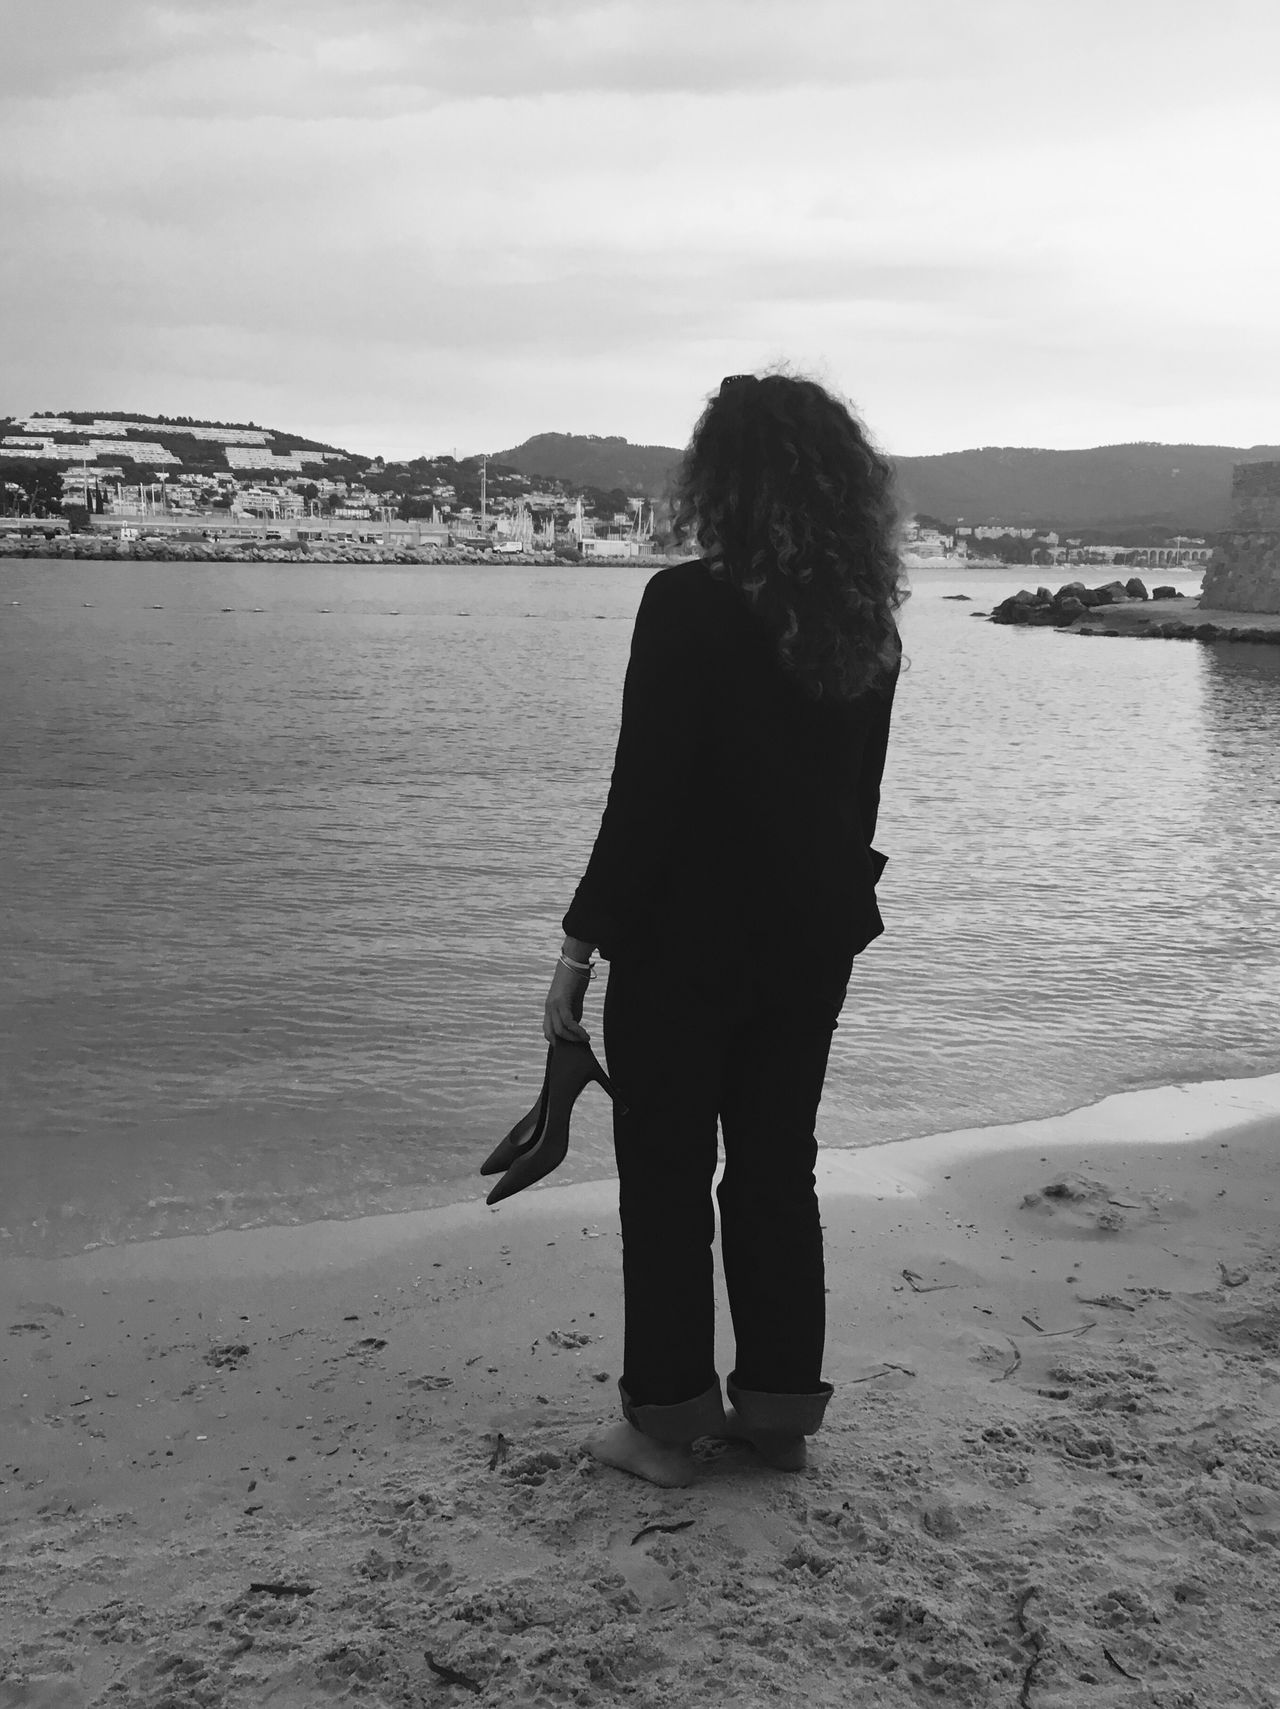 She's waiting... Rear View Beach Sea Standing Full Length Water Person Tranquility Shore Tranquil Scene Remote Idyllic Sky Solitude Scenics Calm Long Hair Nature Vacations Alone Monochrome Photography Snap A Stranger